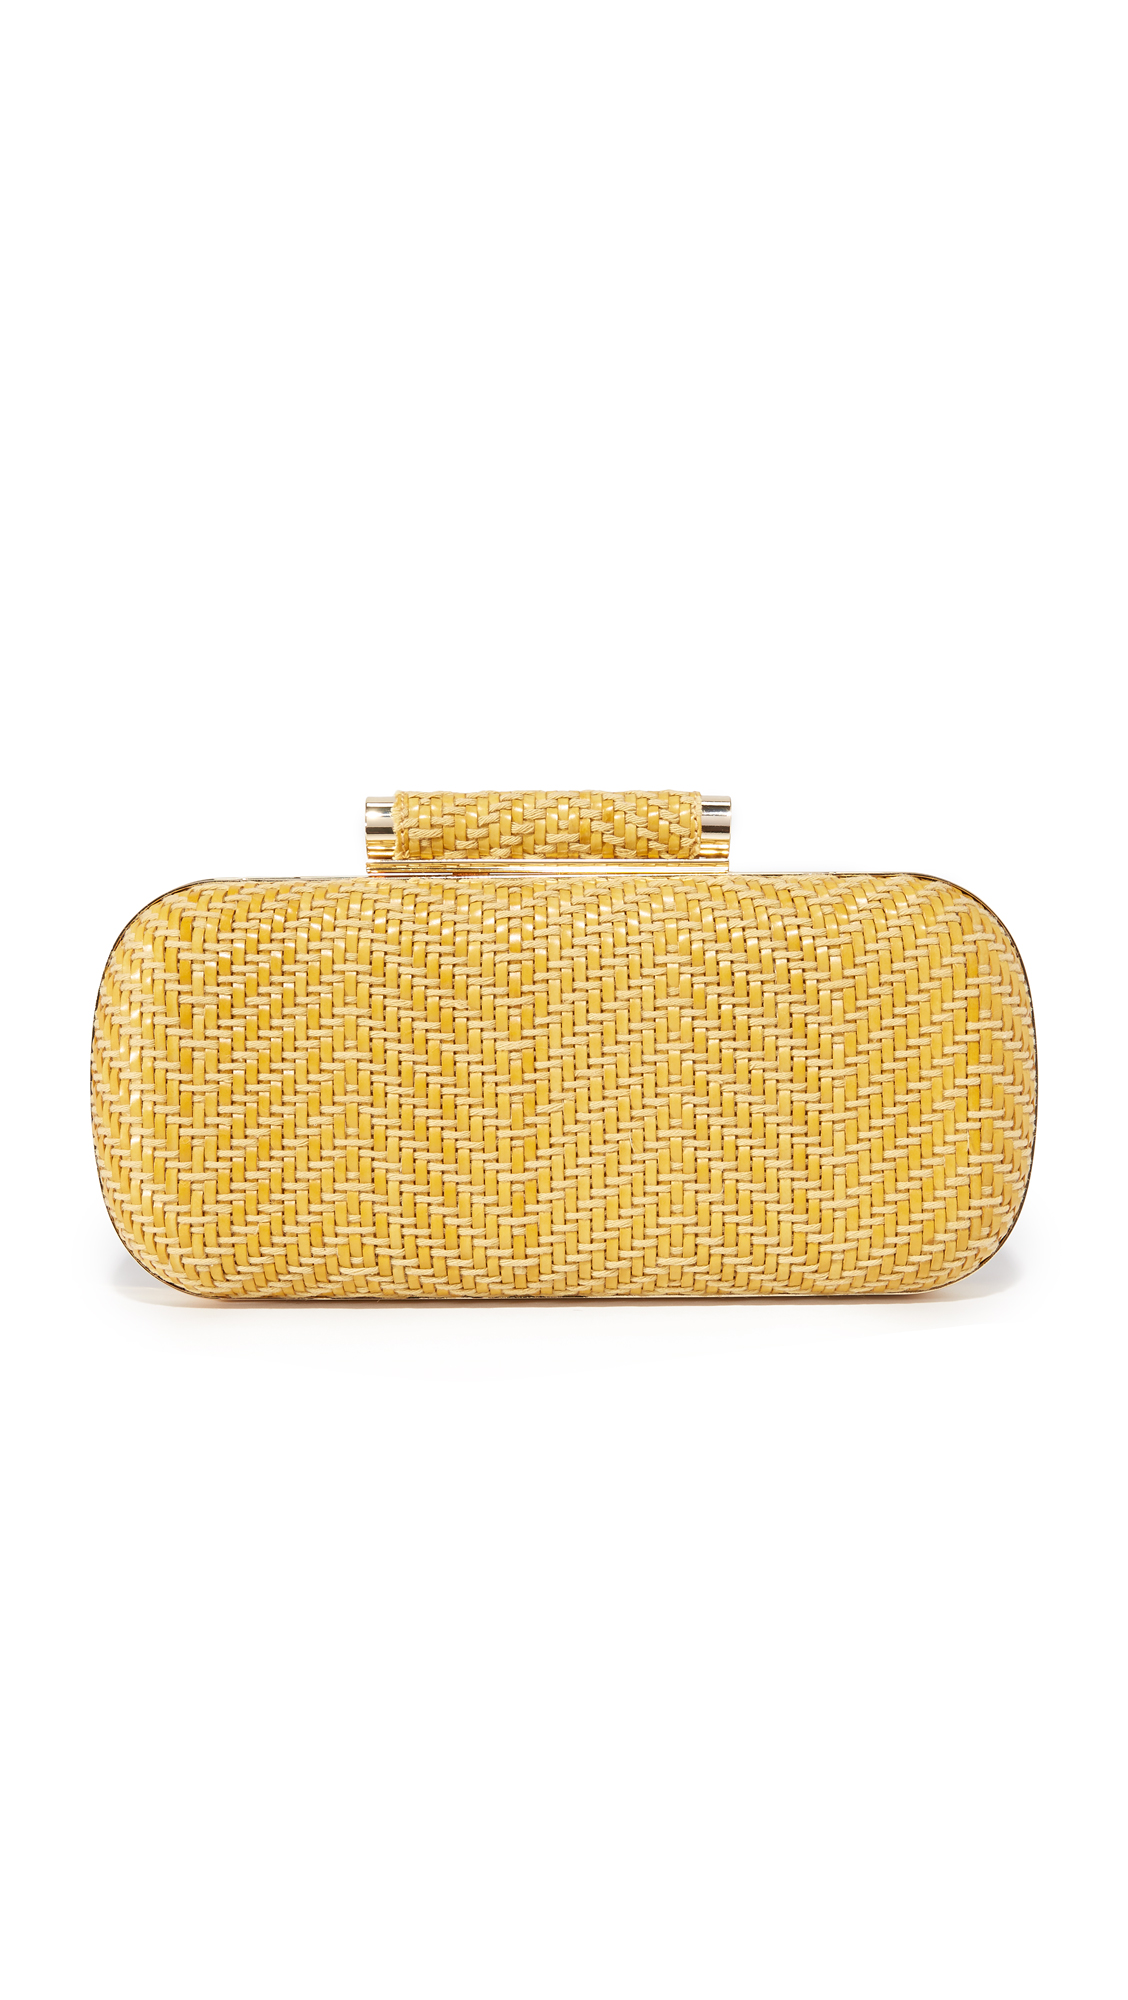 A hardshell Inge Christopher clutch, covered in a woven mix of twine and string. The top lock opens to a faille lined, 1 pocket interior. Hideaway chain shoulder strap. Fabric: Basket weave. Weight: 22oz / 0.62kg. Imported, China.